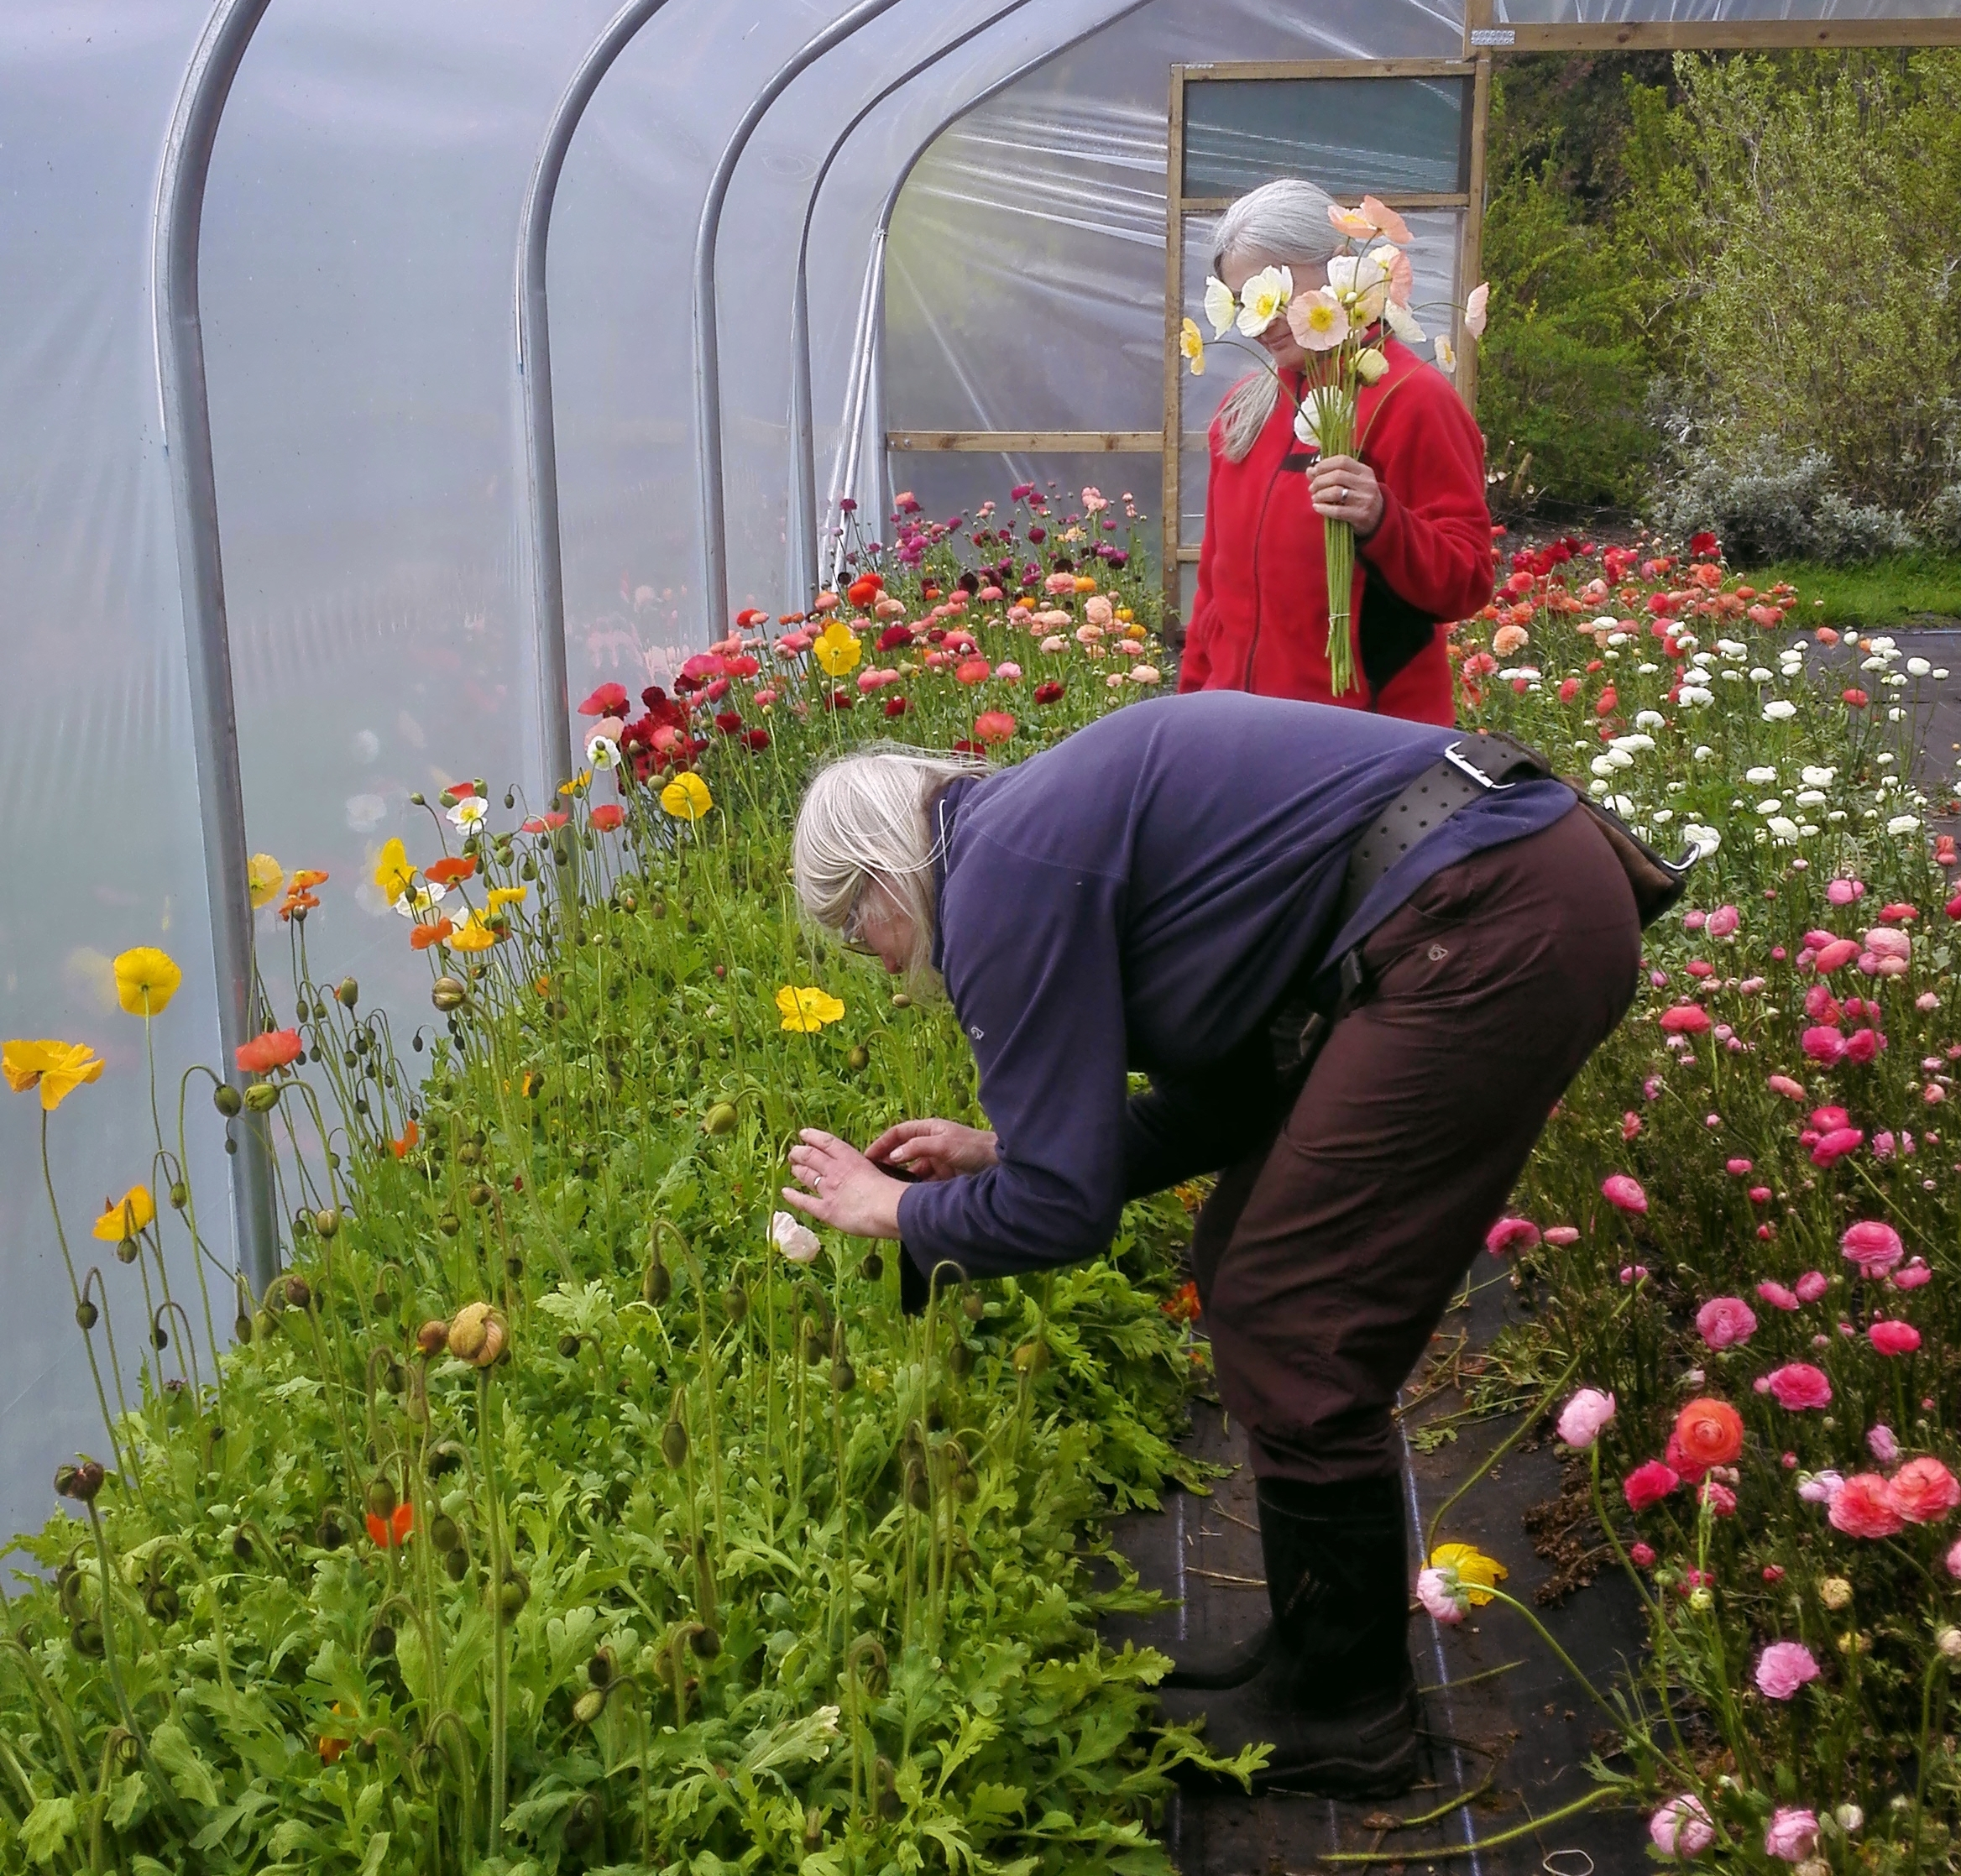 - A great flower farm in the North West is Carols Garden run by Carol Siddorn who produces the most beautiful and unusual flowers grown in as sustainable way as possible. She grows over 500 varieties of flowers and plants!